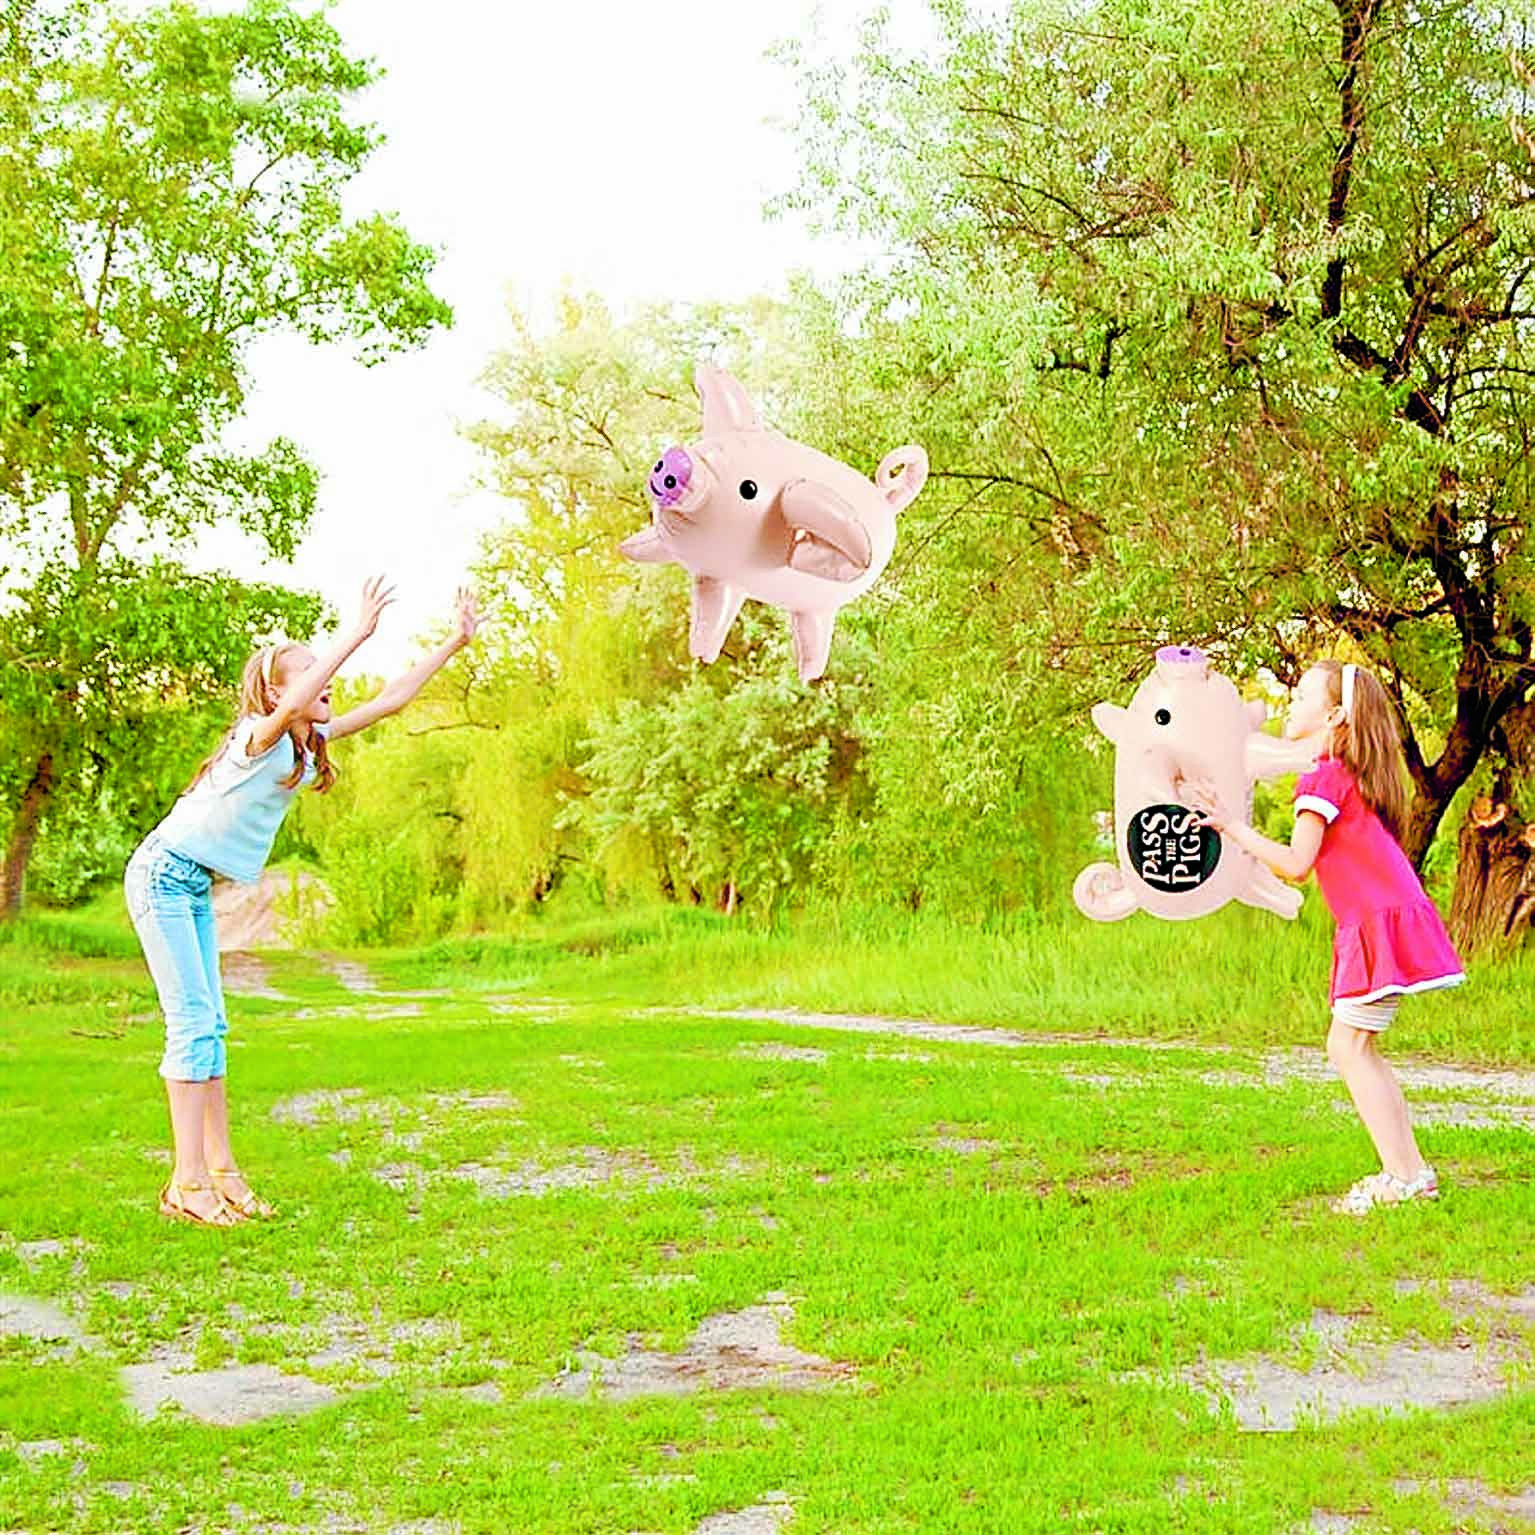 Have fun this summer with Giant Pass the Pigs!